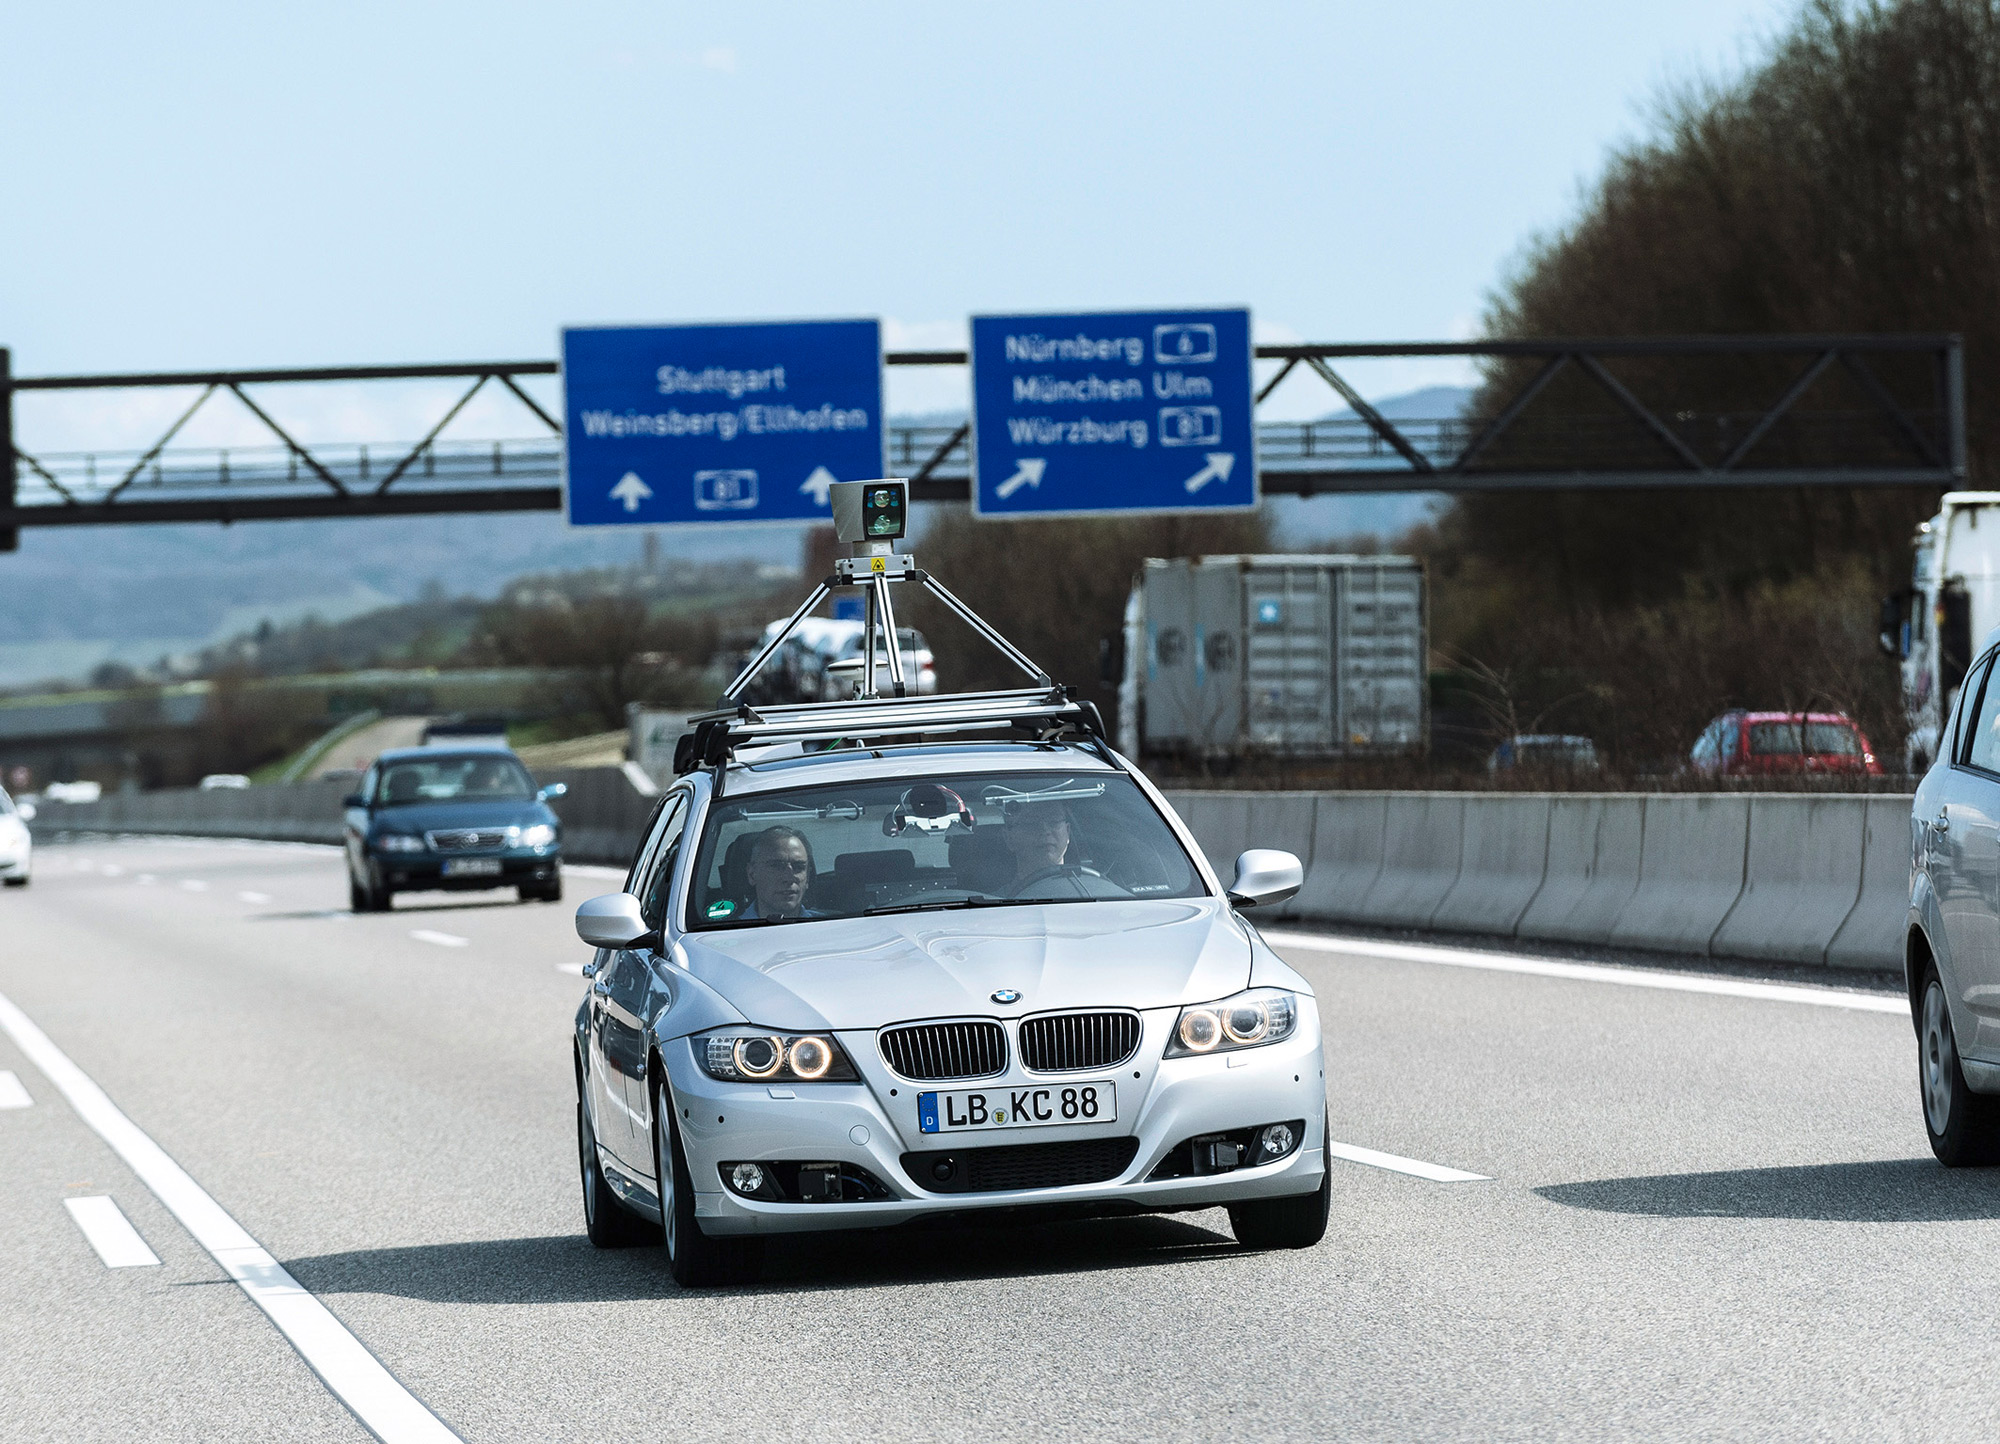 BMW self-driving Germany road